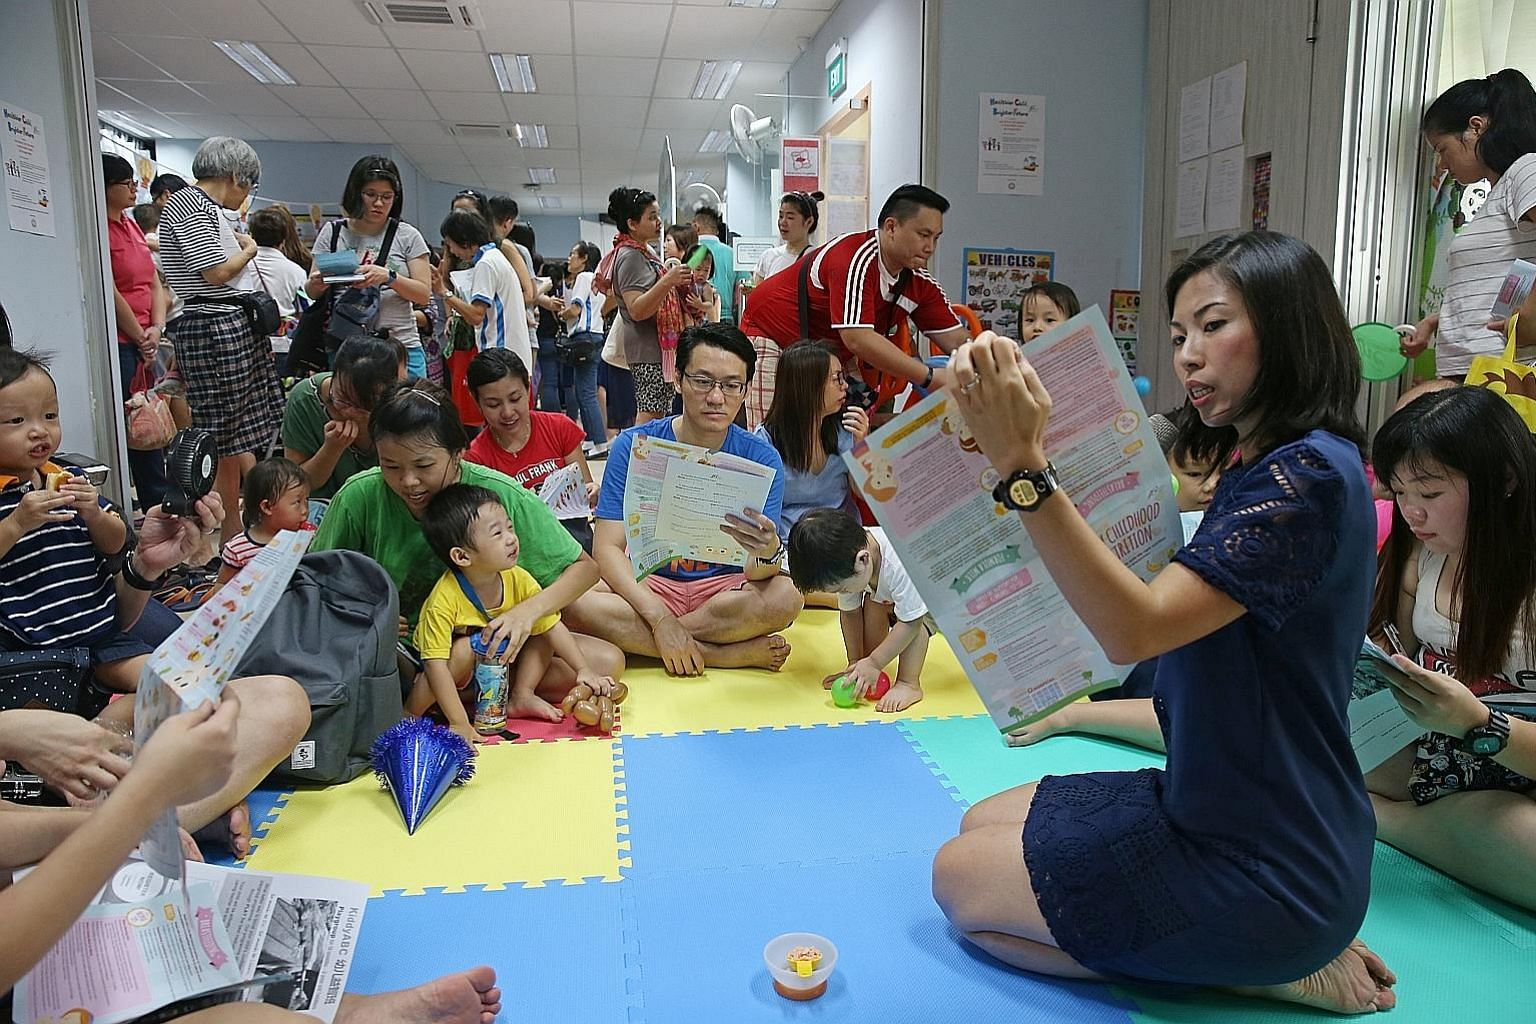 A nutritionist from the Health Promotion Board, Ms Jolyn Wong, 36, giving a talk at the Embracing Parenthood event held at Punggol Seas RC yesterday.